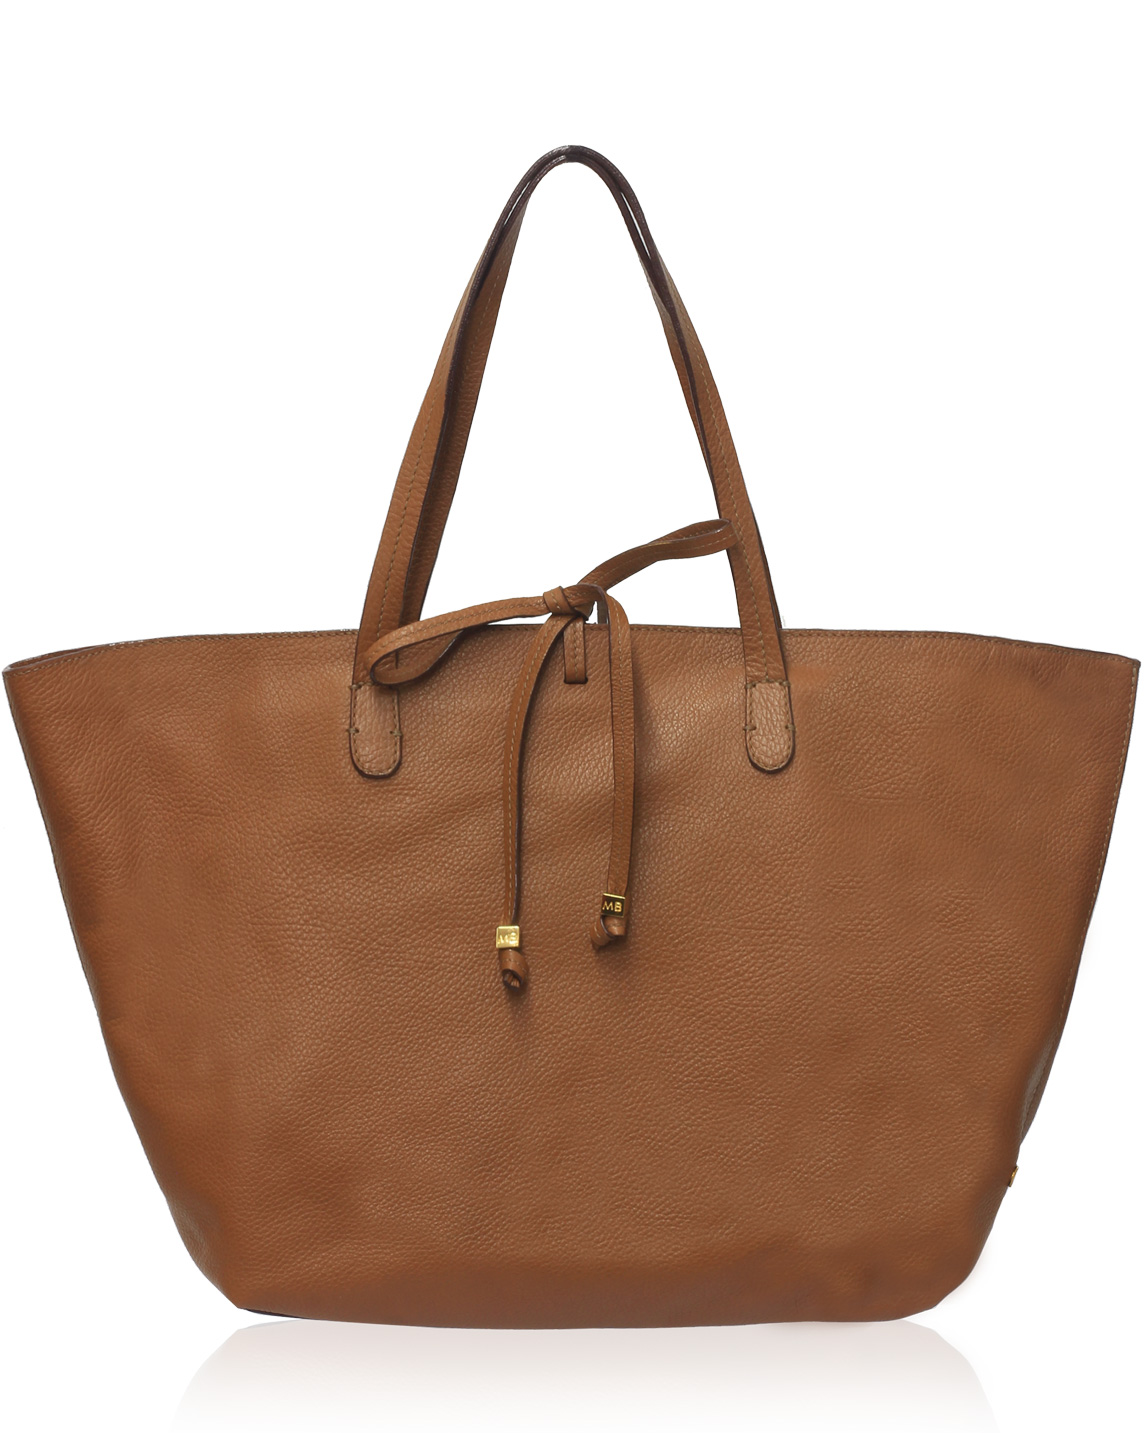 Cartera Tote Bag DS-2611 Color Natural